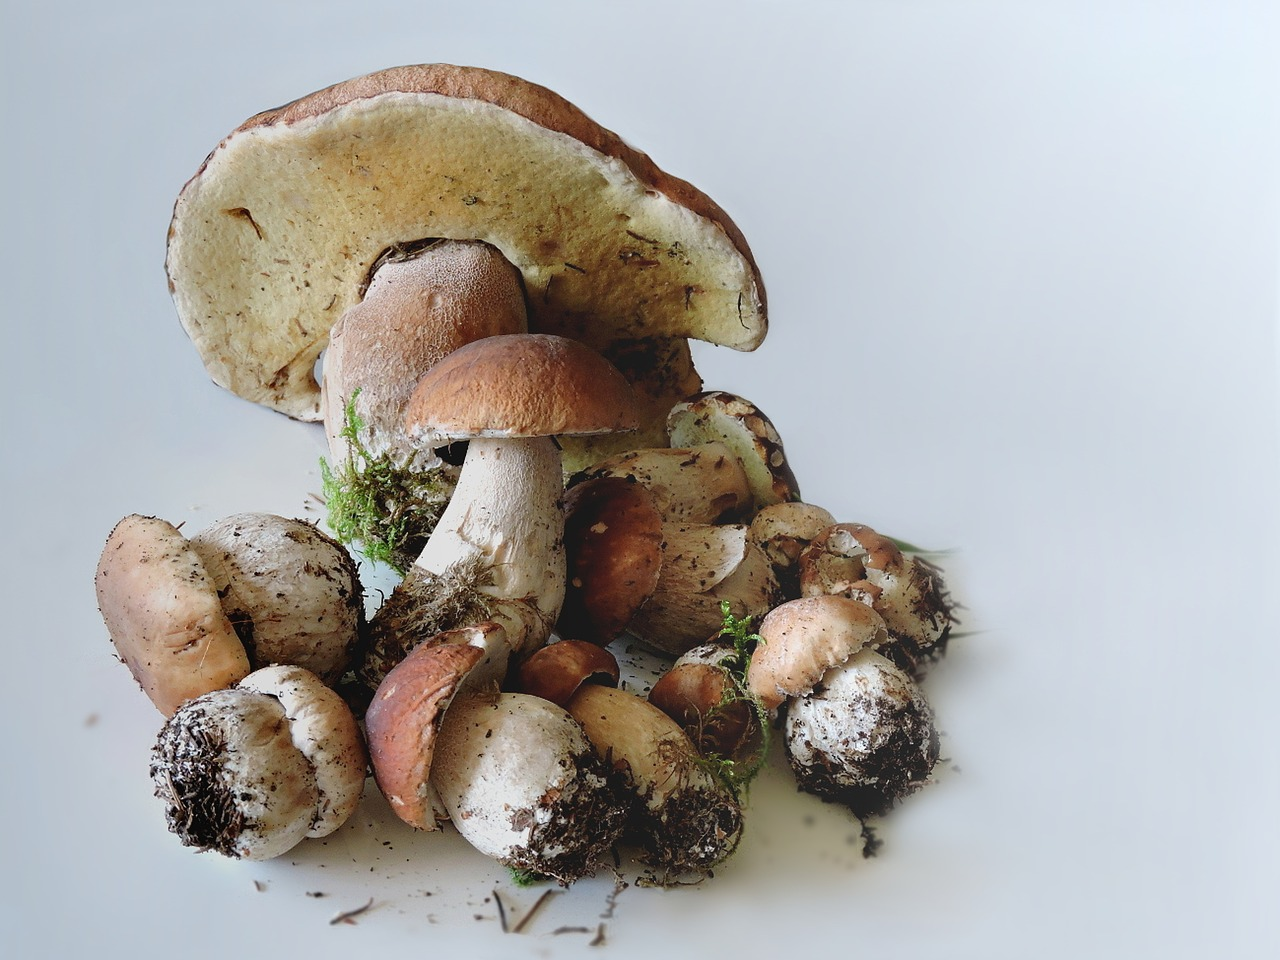 Are mushrooms anti-aging?